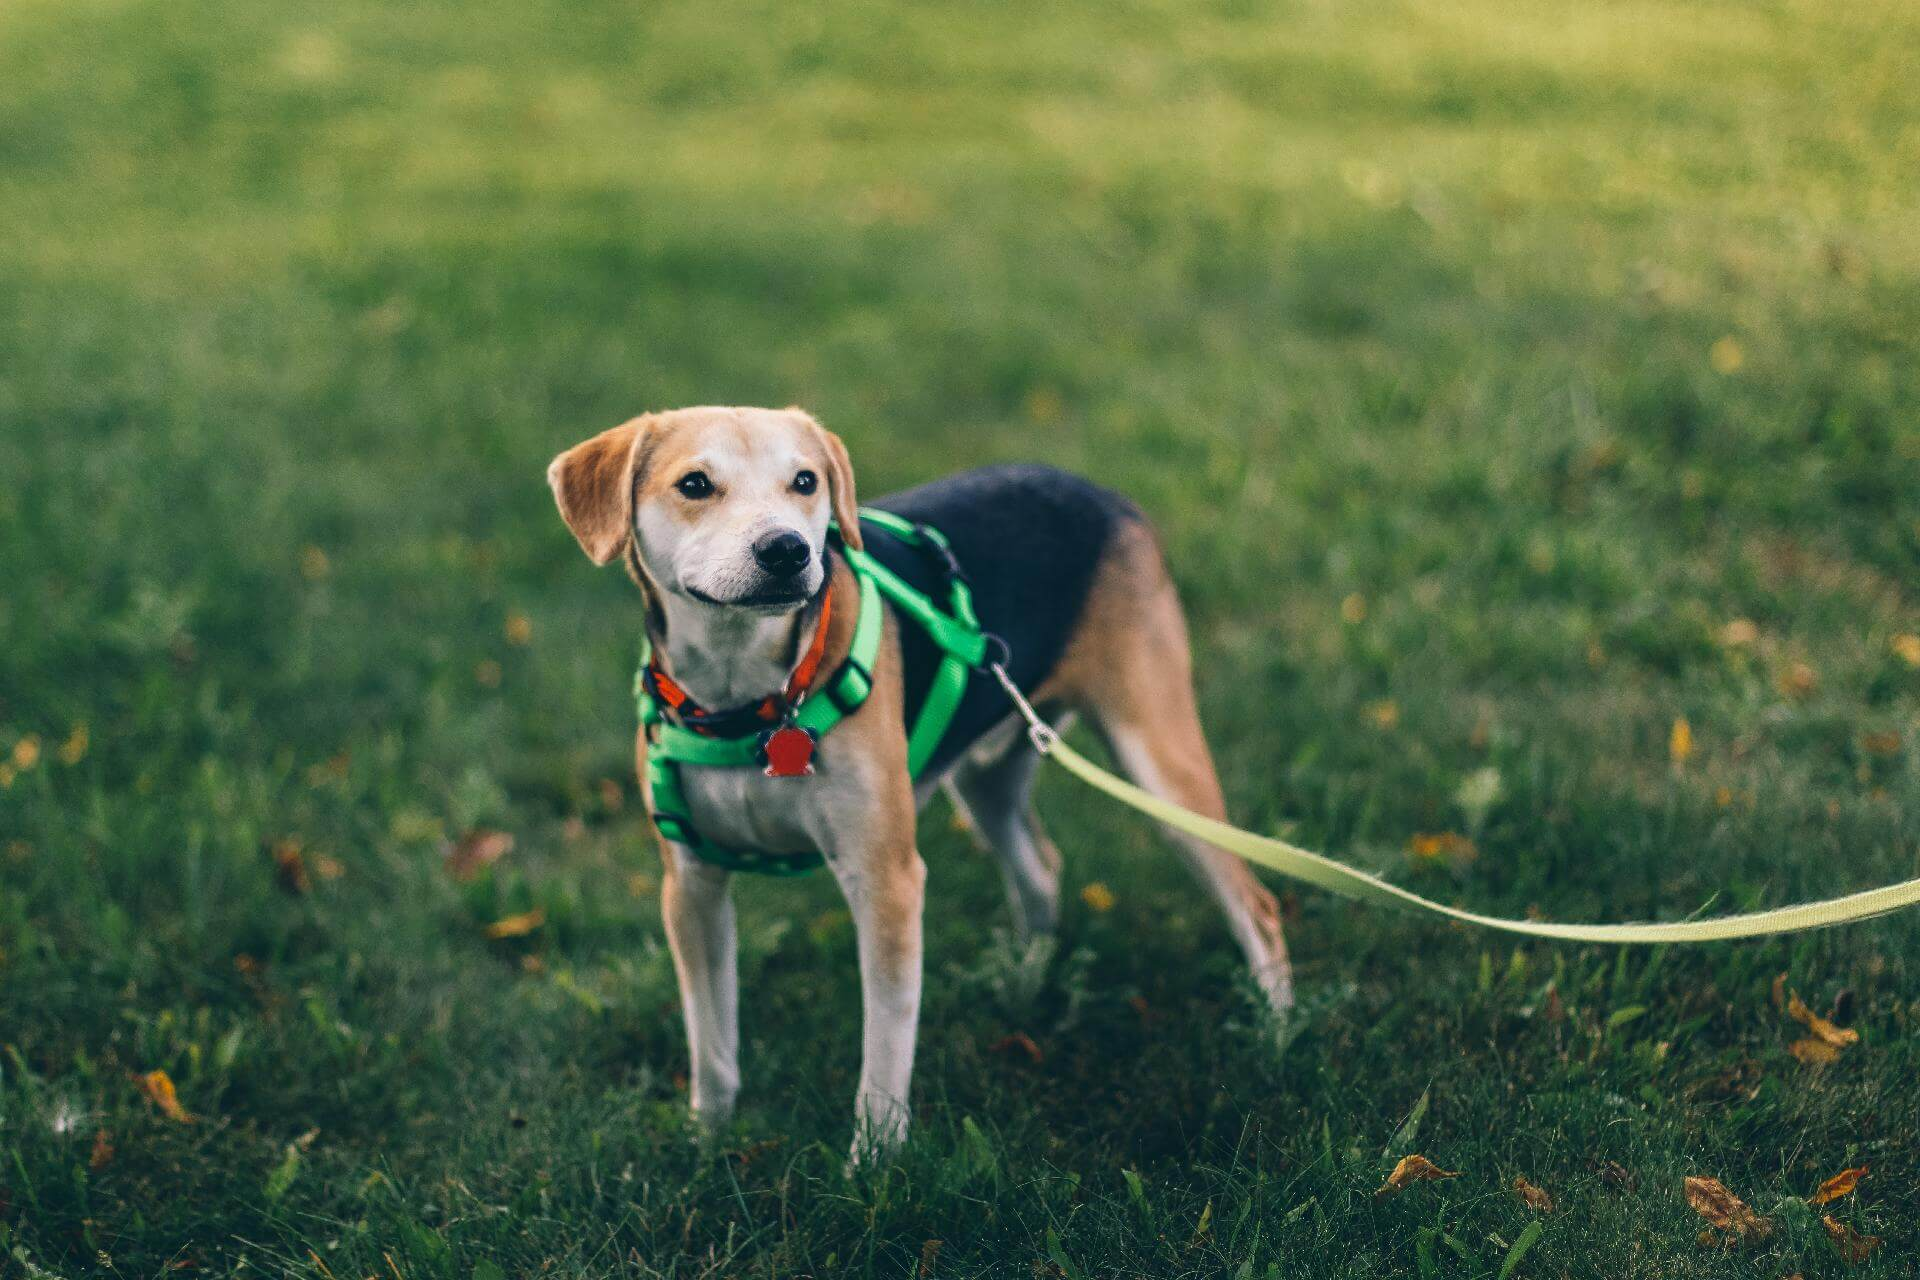 Dog wearing an escape proof harness